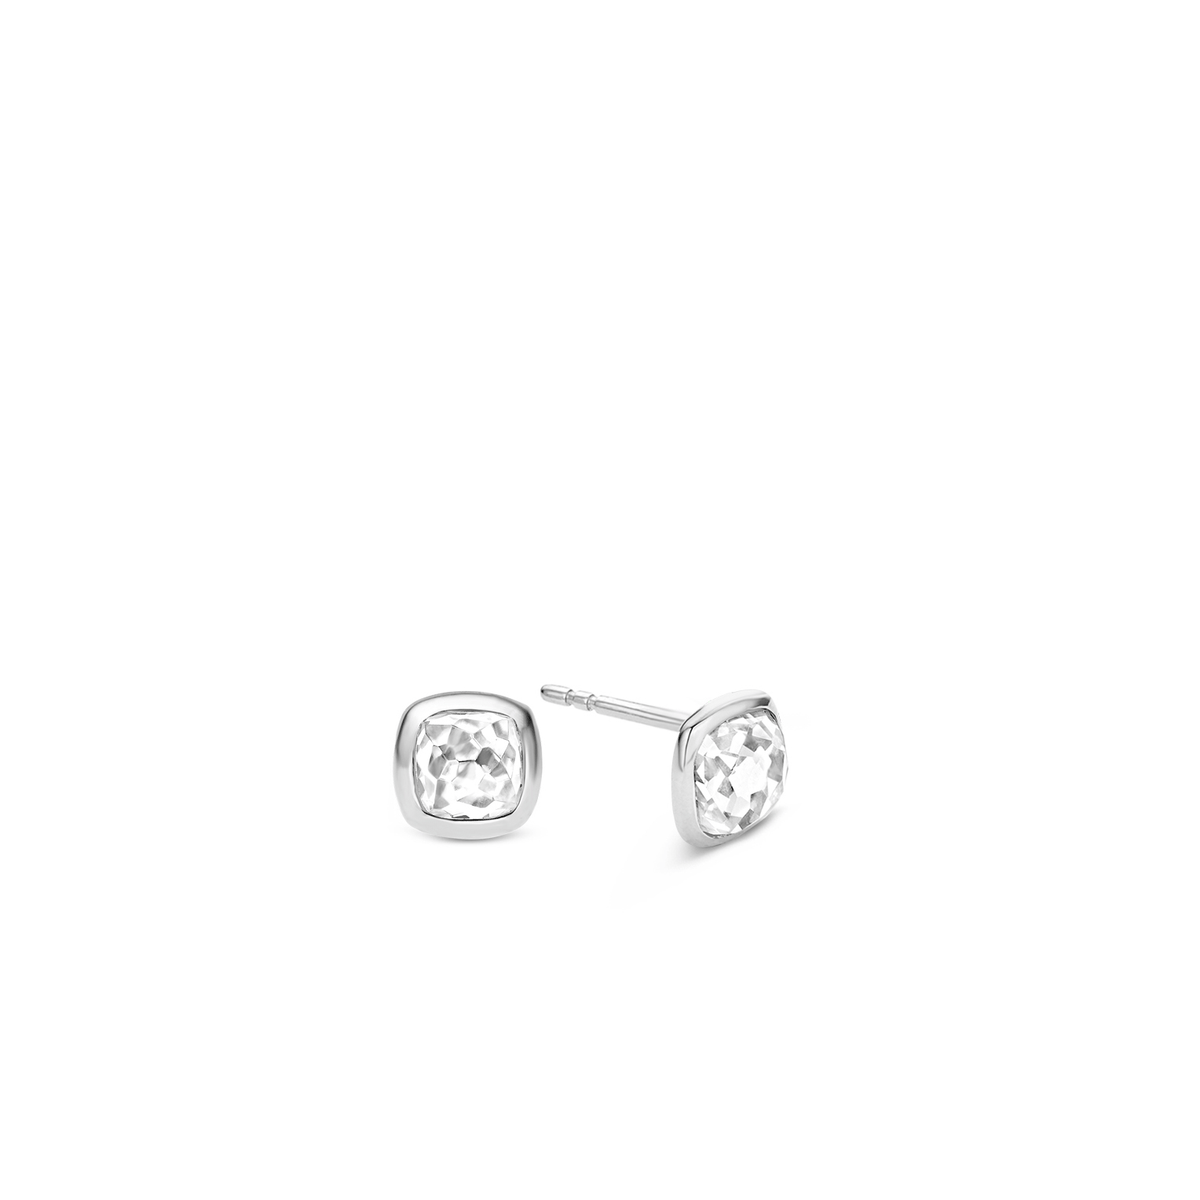 TI SENTO - Milano Earrings 7736ZI